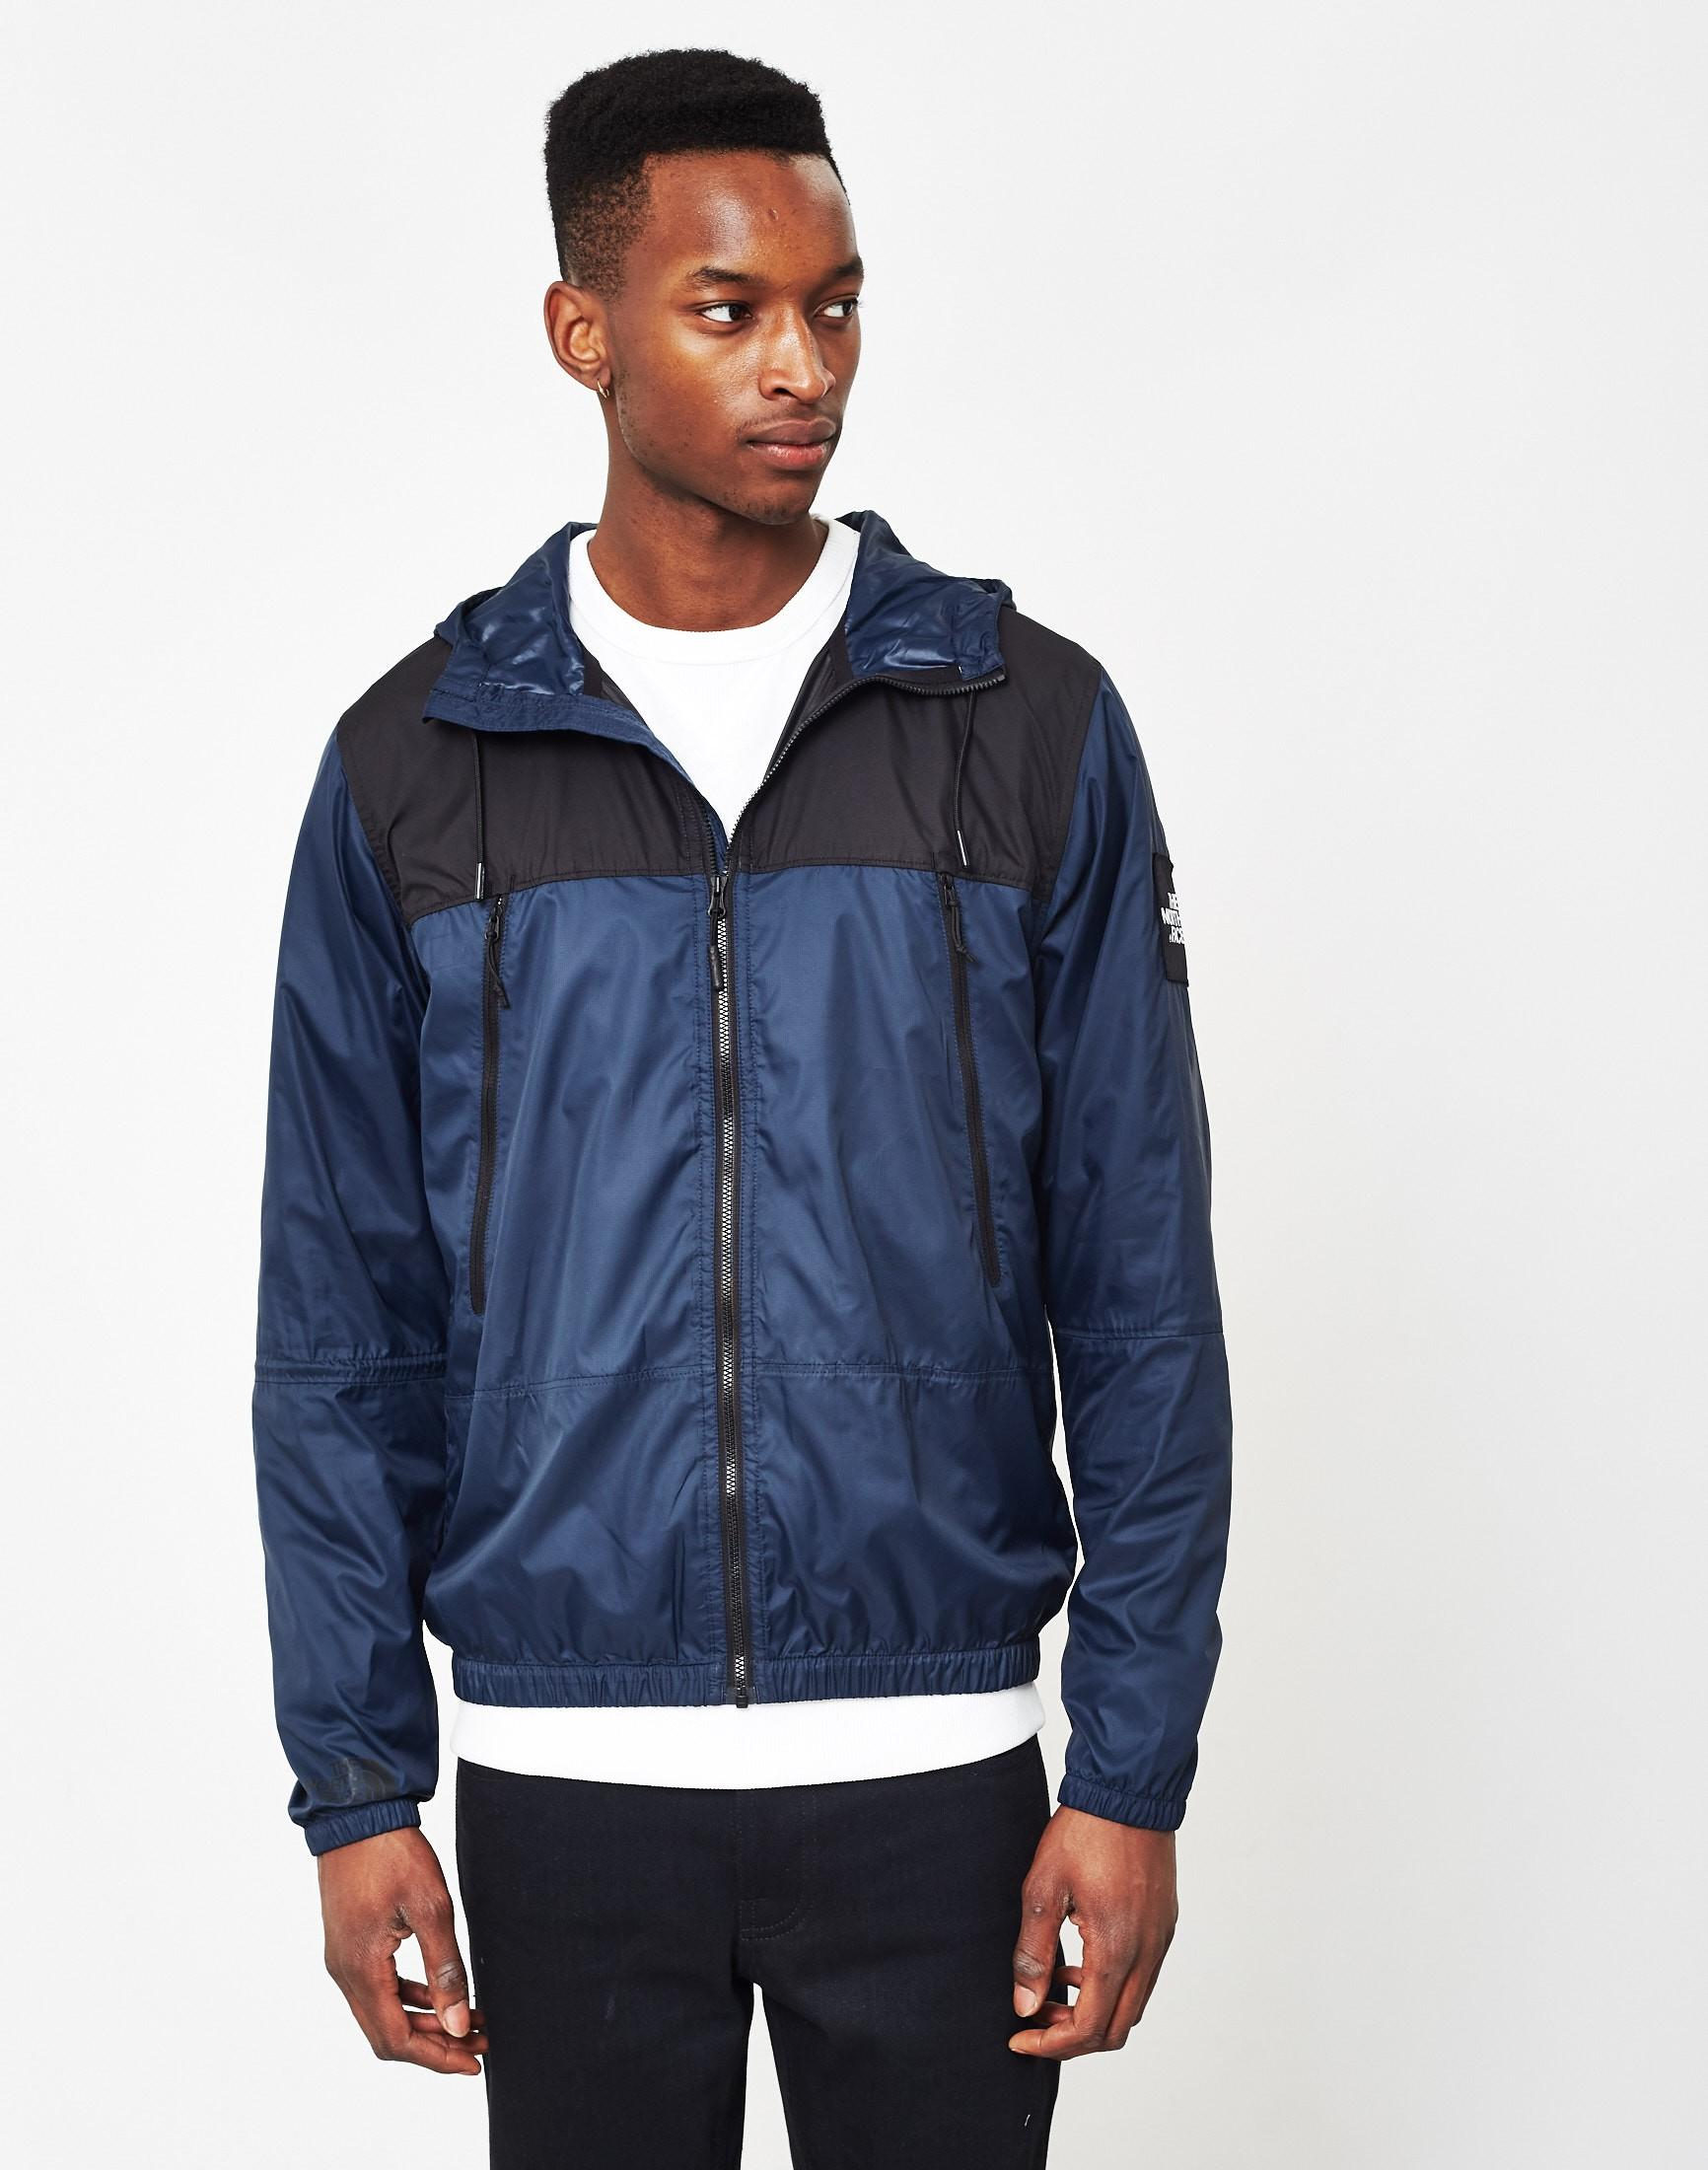 Lyst The North Face Black Label 1990 Seasonal Mountain